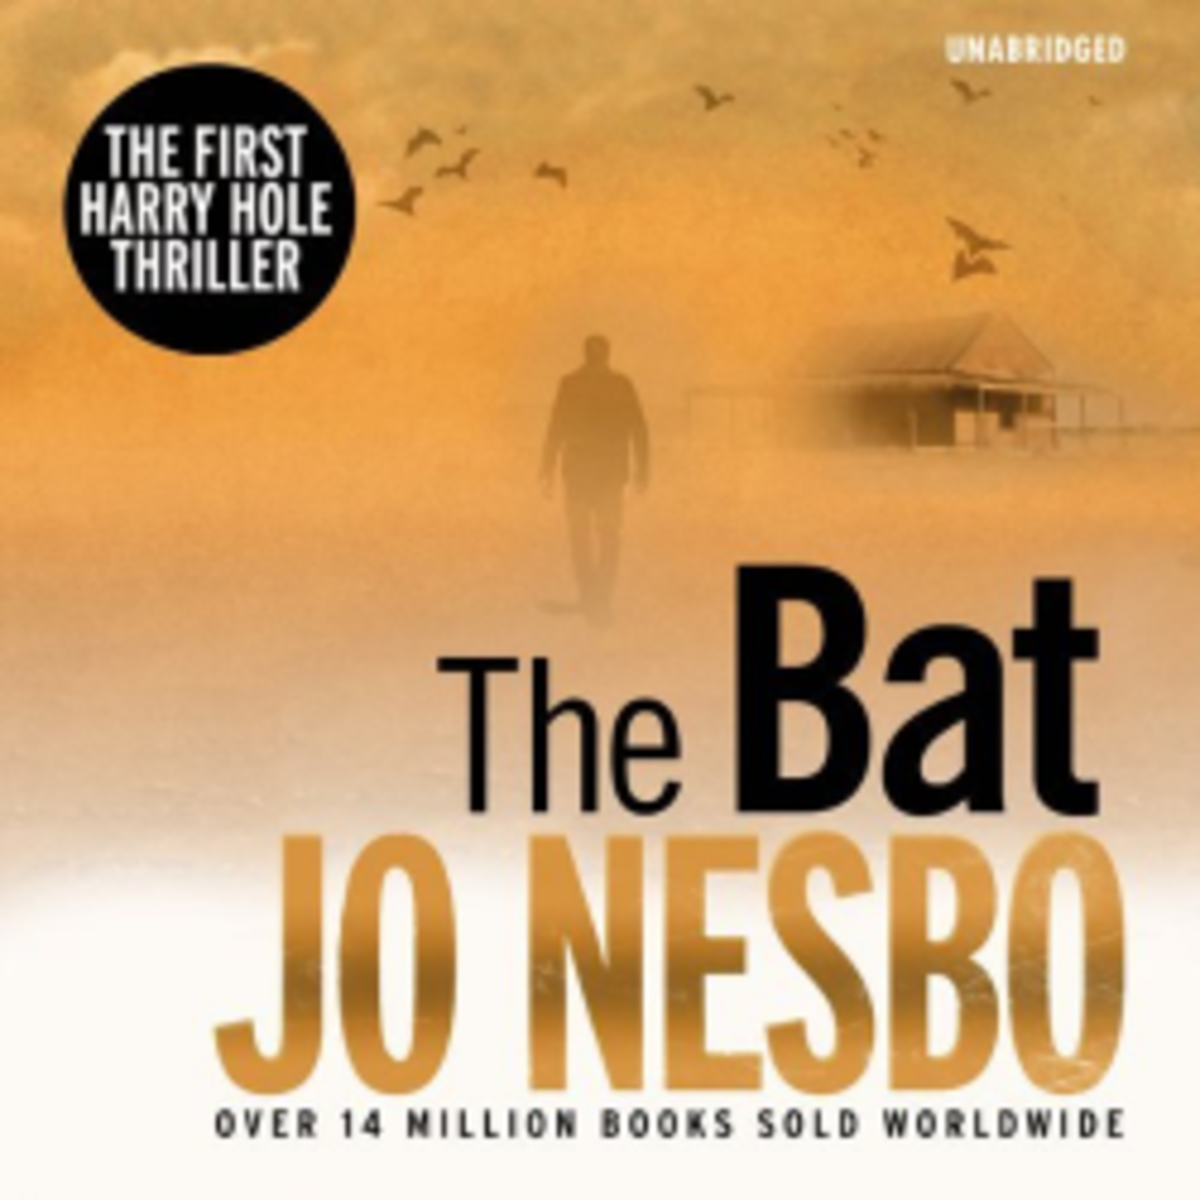 Jo Nesbo Books In Order